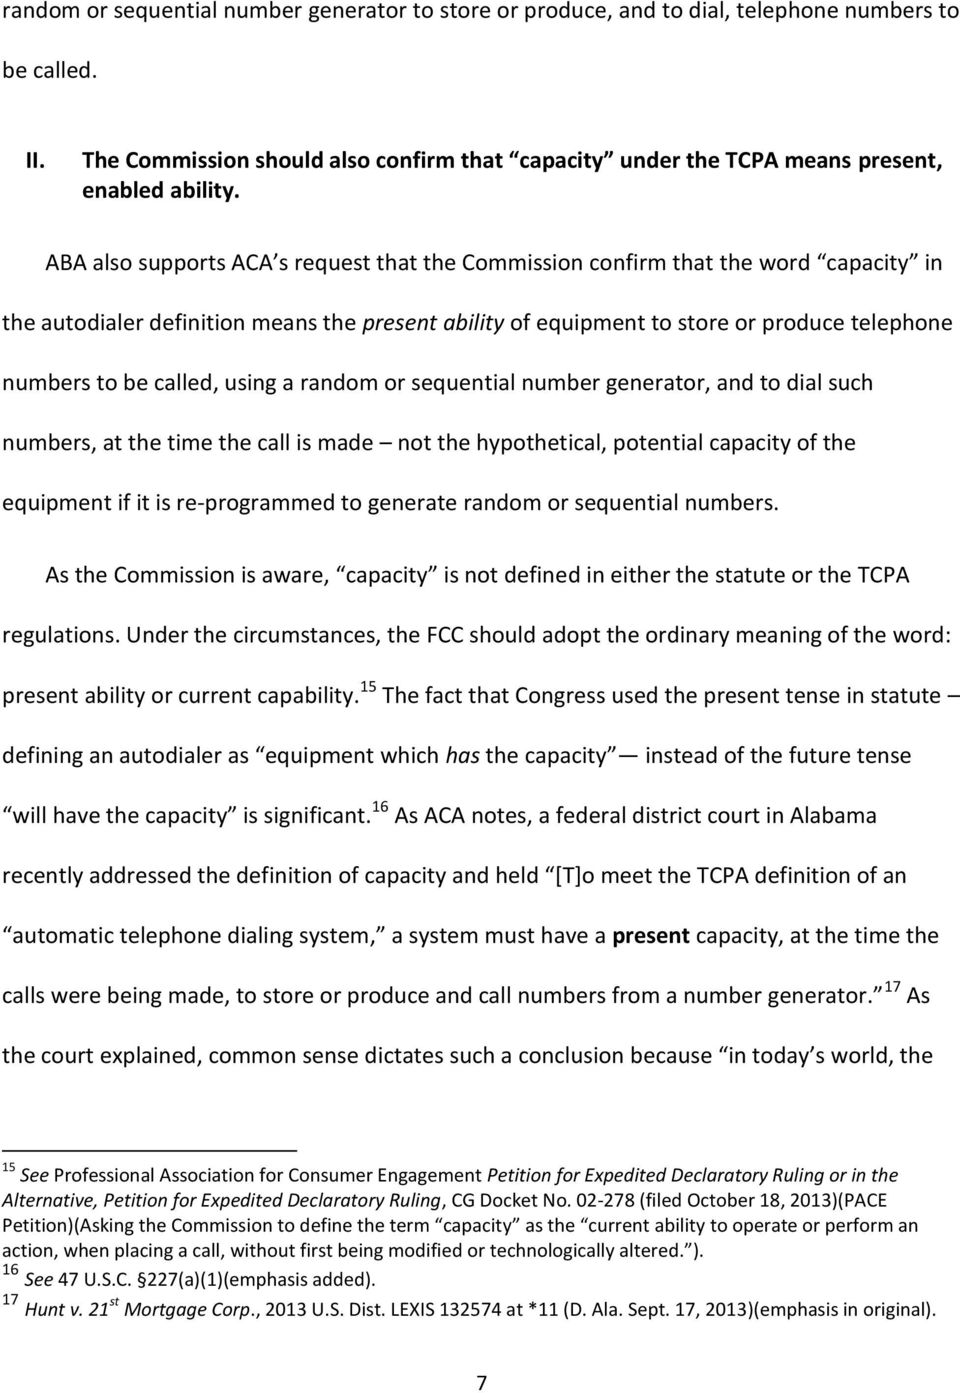 ABA also supports ACA s request that the Commission confirm that the word capacity in the autodialer definition means the present ability of equipment to store or produce telephone numbers to be